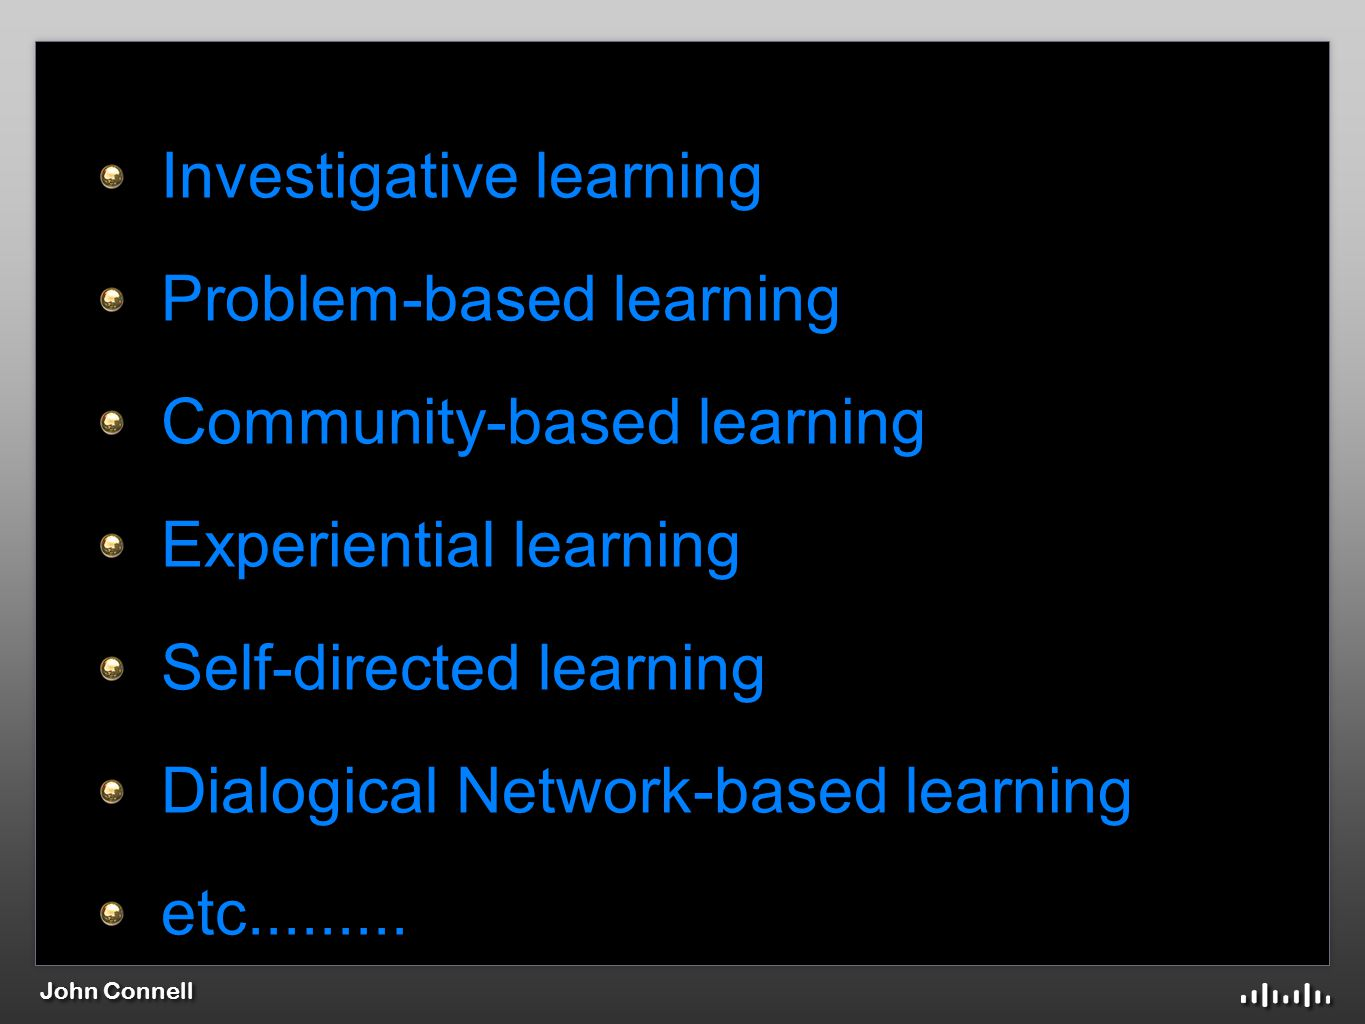 John Connell Investigative learning Problem-based learning Community-based learning Experiential learning Self-directed learning Dialogical Network-based learning etc.........